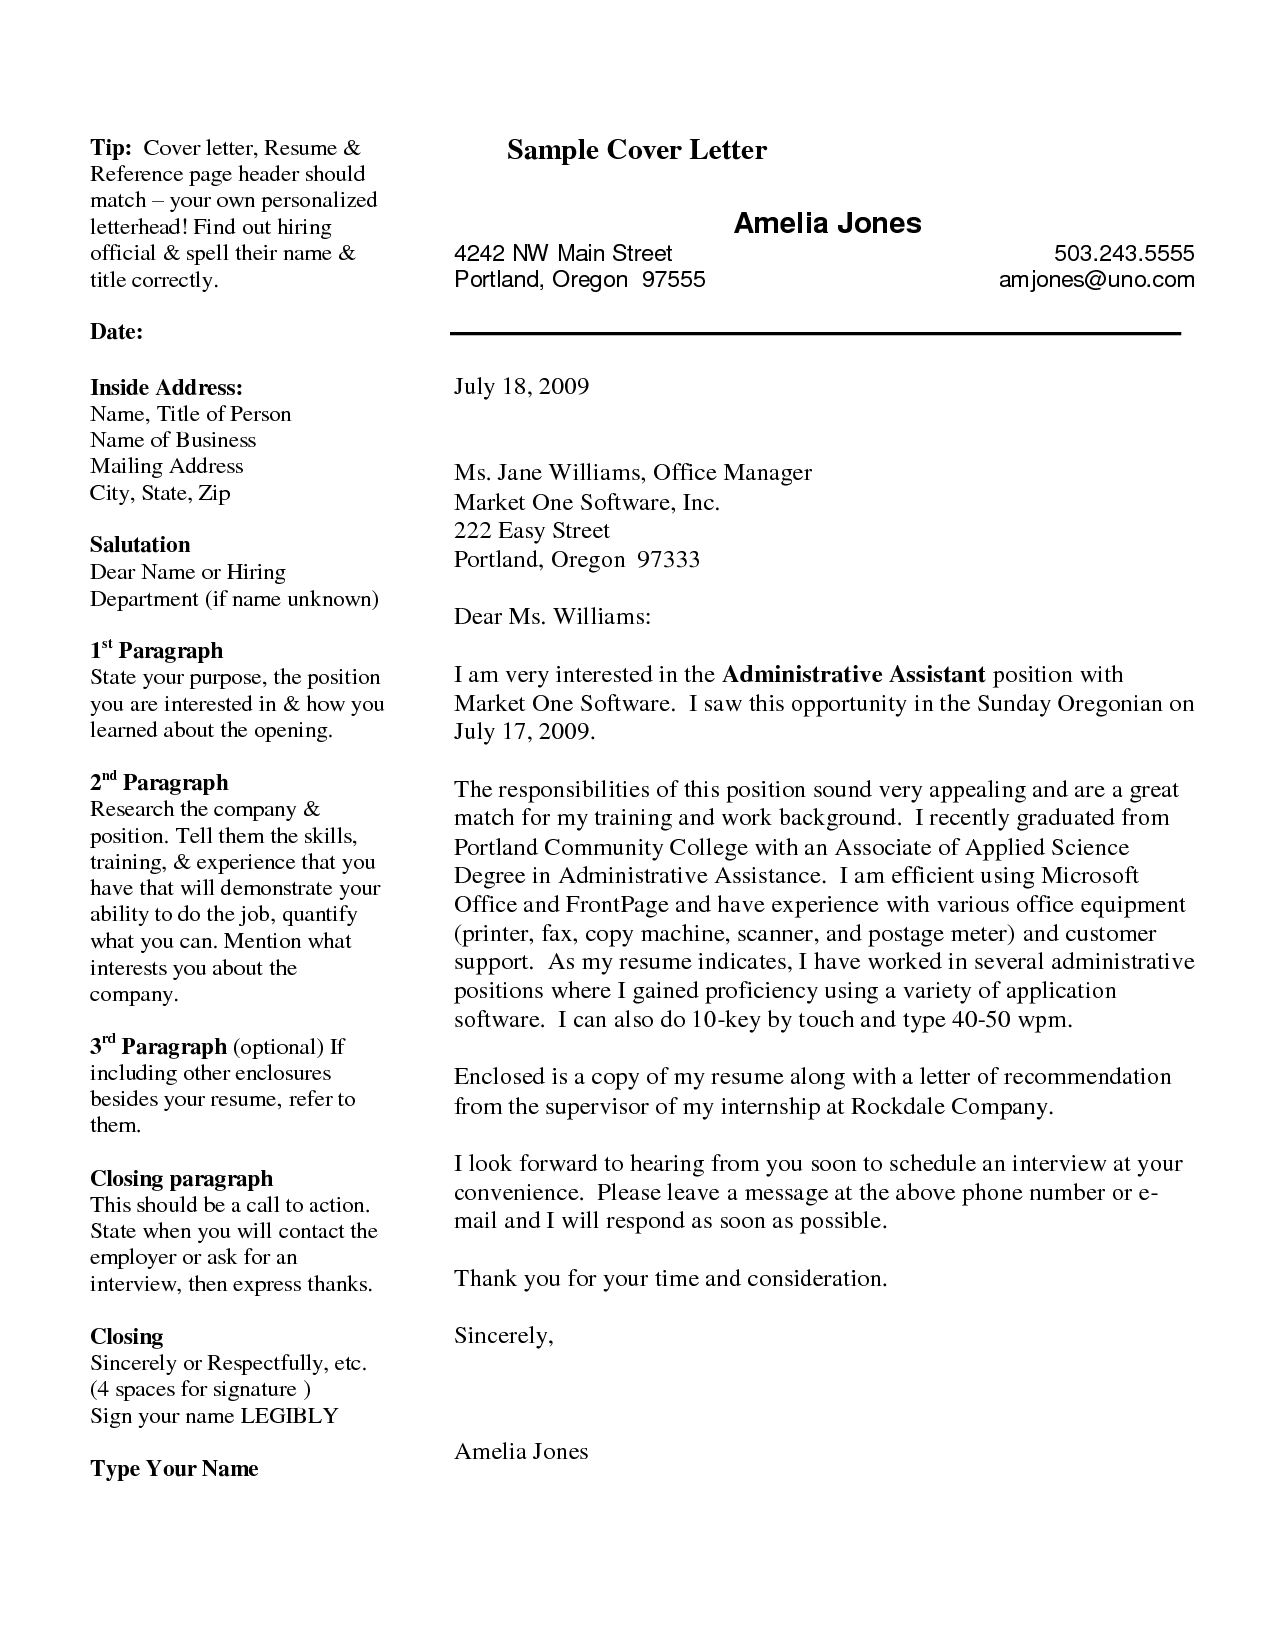 Professional Resume Cover Letter SamplesProfessional Resume Cover Letter  Samples Professional Resume Cover Letter Samples,how  How To Do A Cover Resume